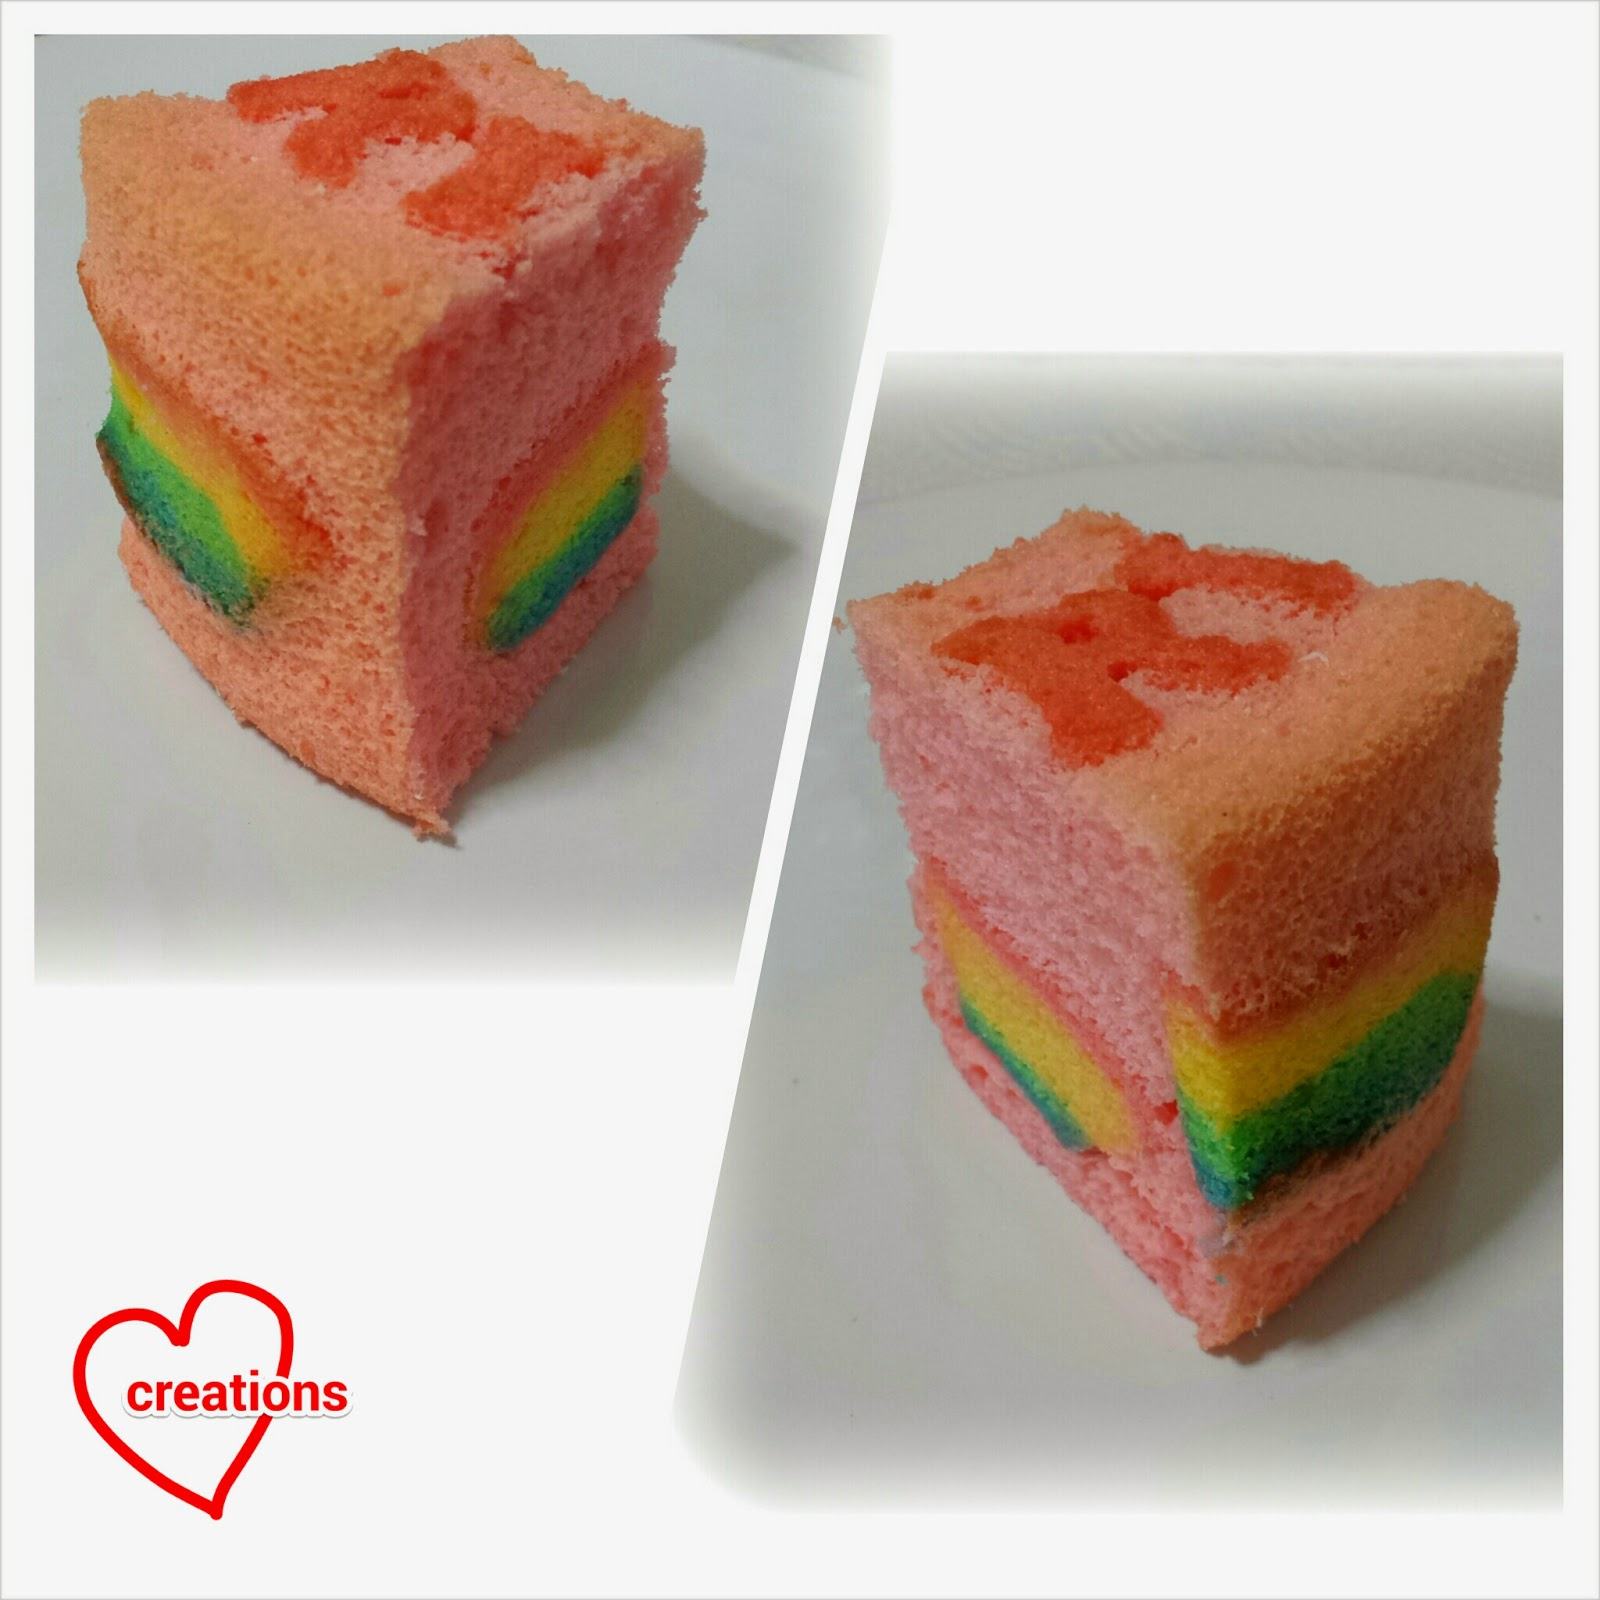 Loving Creations for You: Hidden Rainbow Strawberry Chiffon Cake for Baby Shower